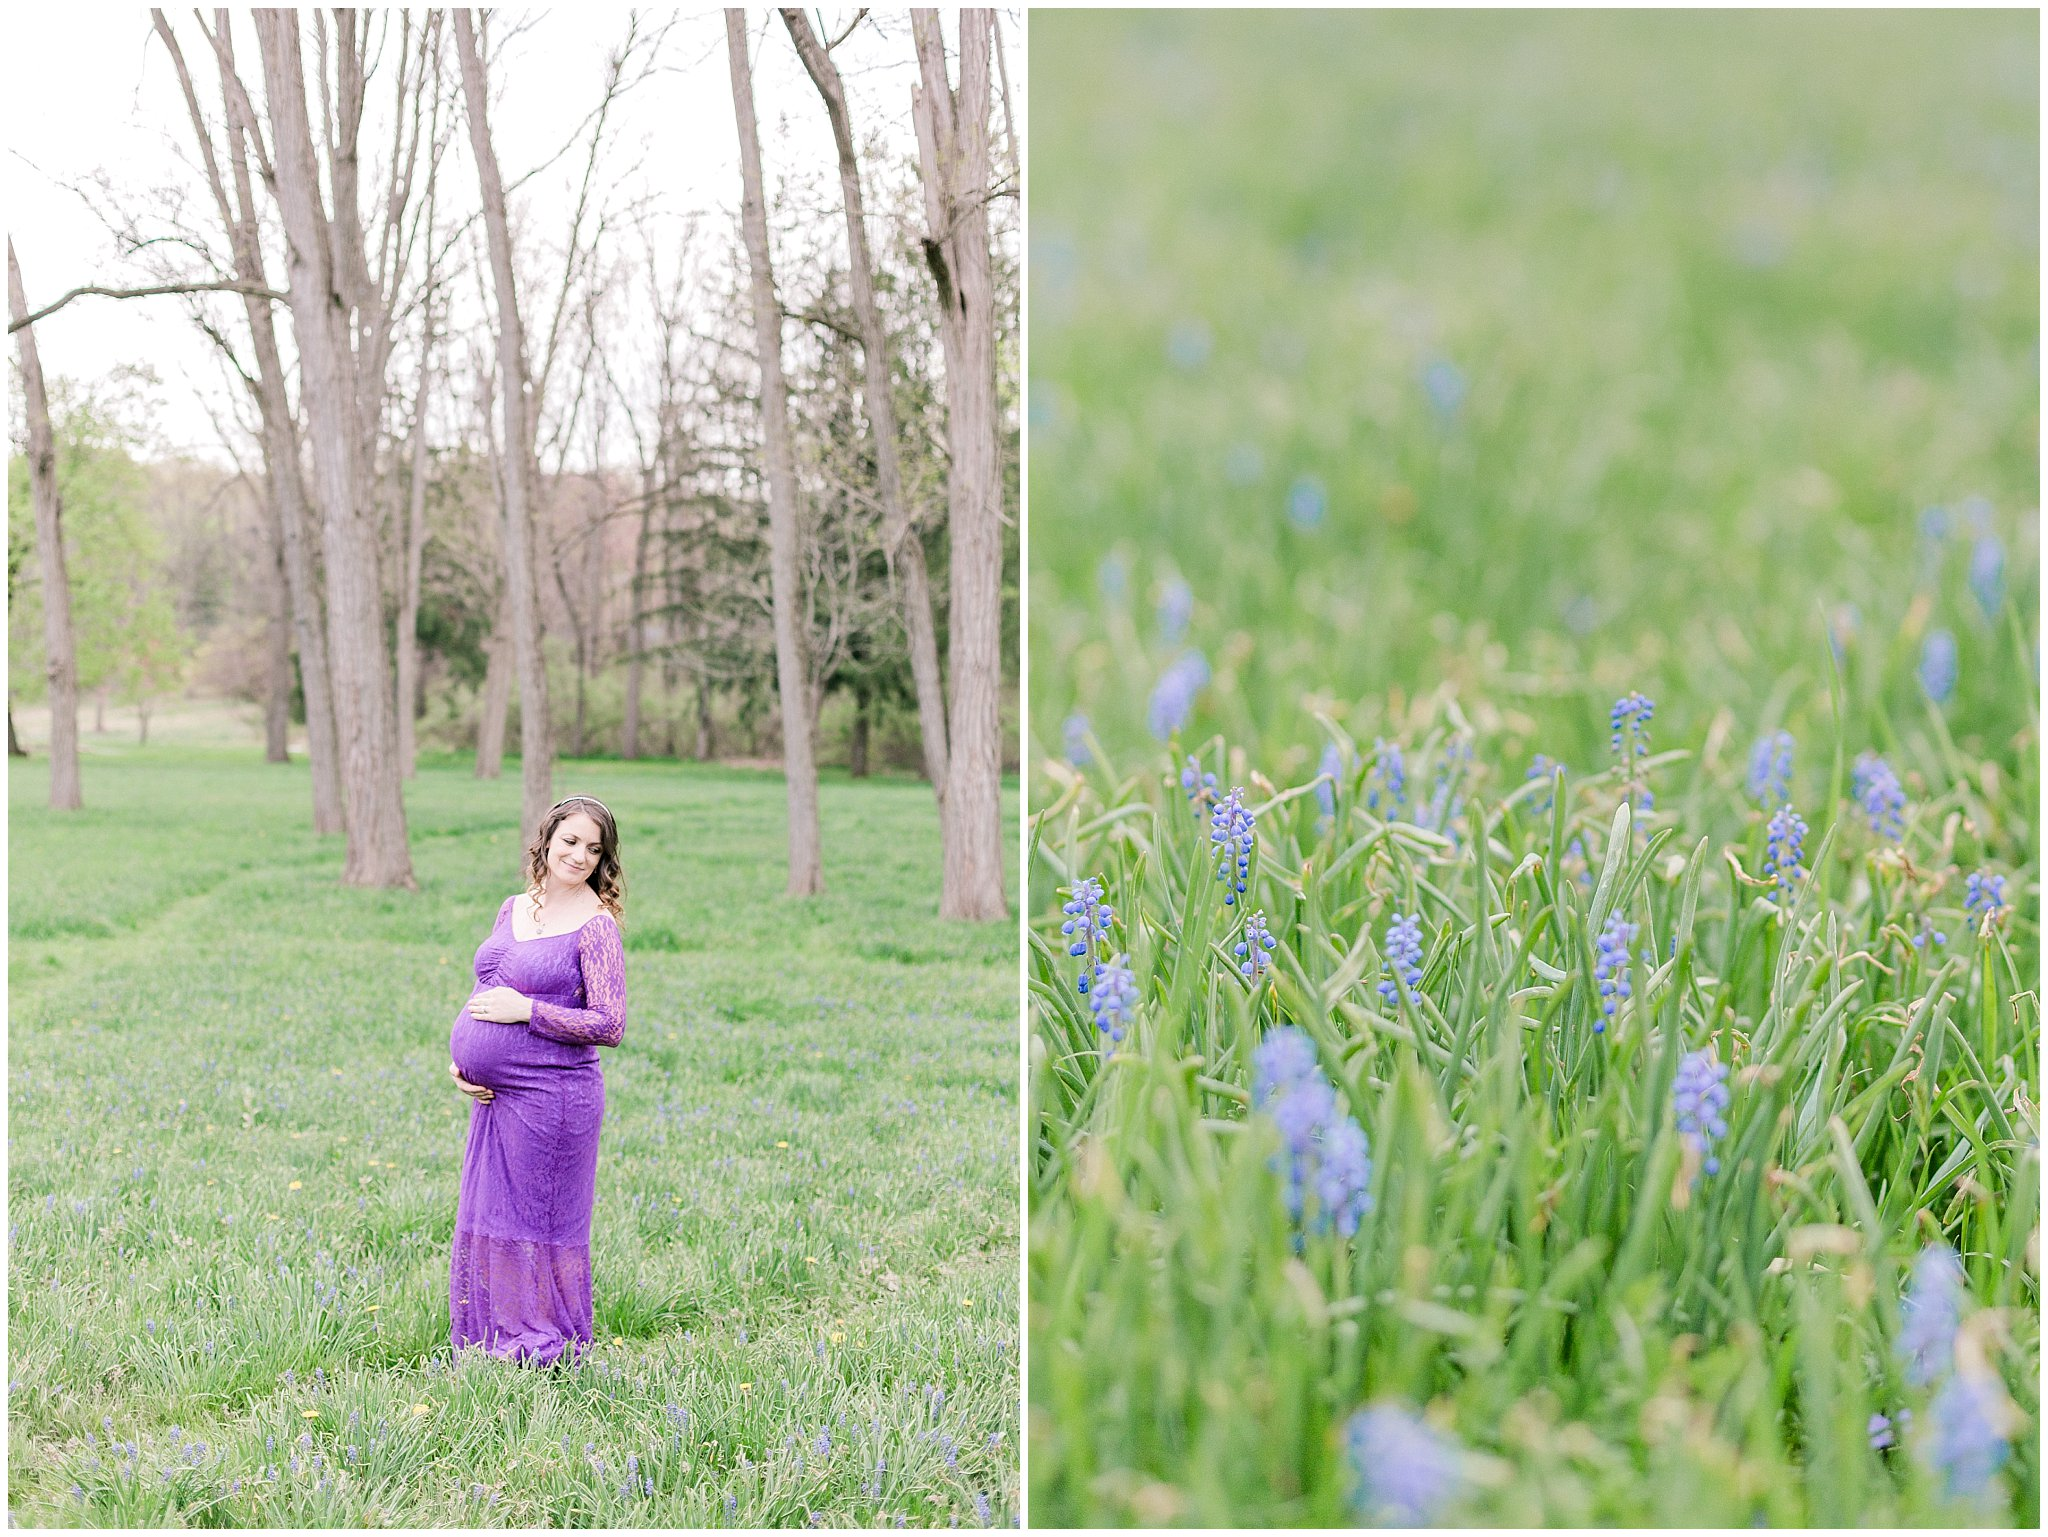 alburtis lockridge blue bonnet purple inspried maternity and family session pennsylvania wedding and lifestyle photographer (11).jpg